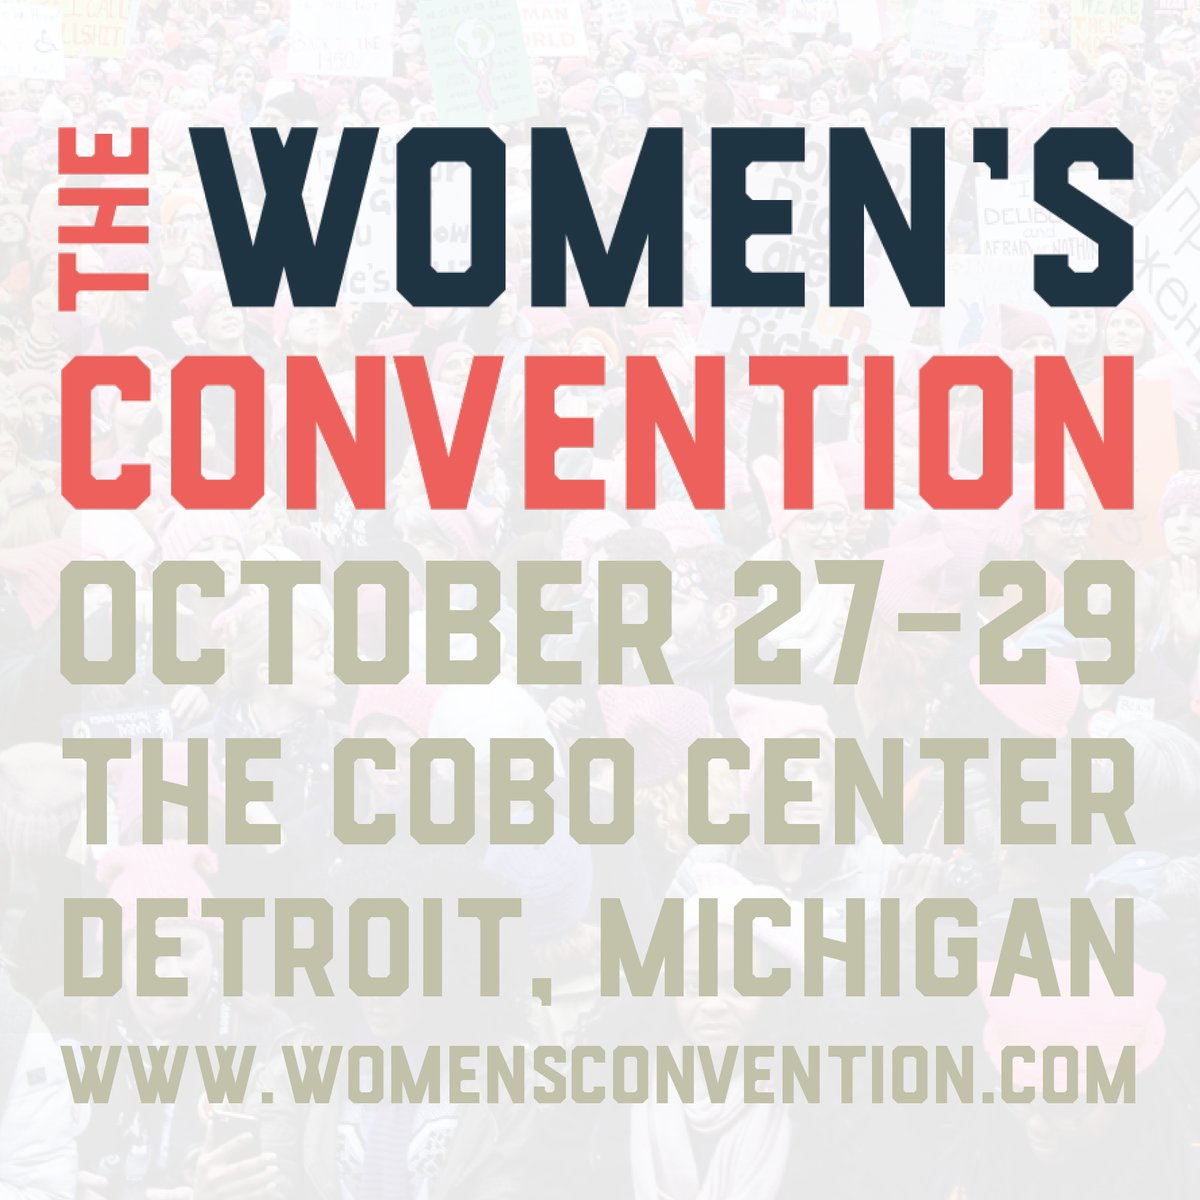 Women's March: The Women's Convention